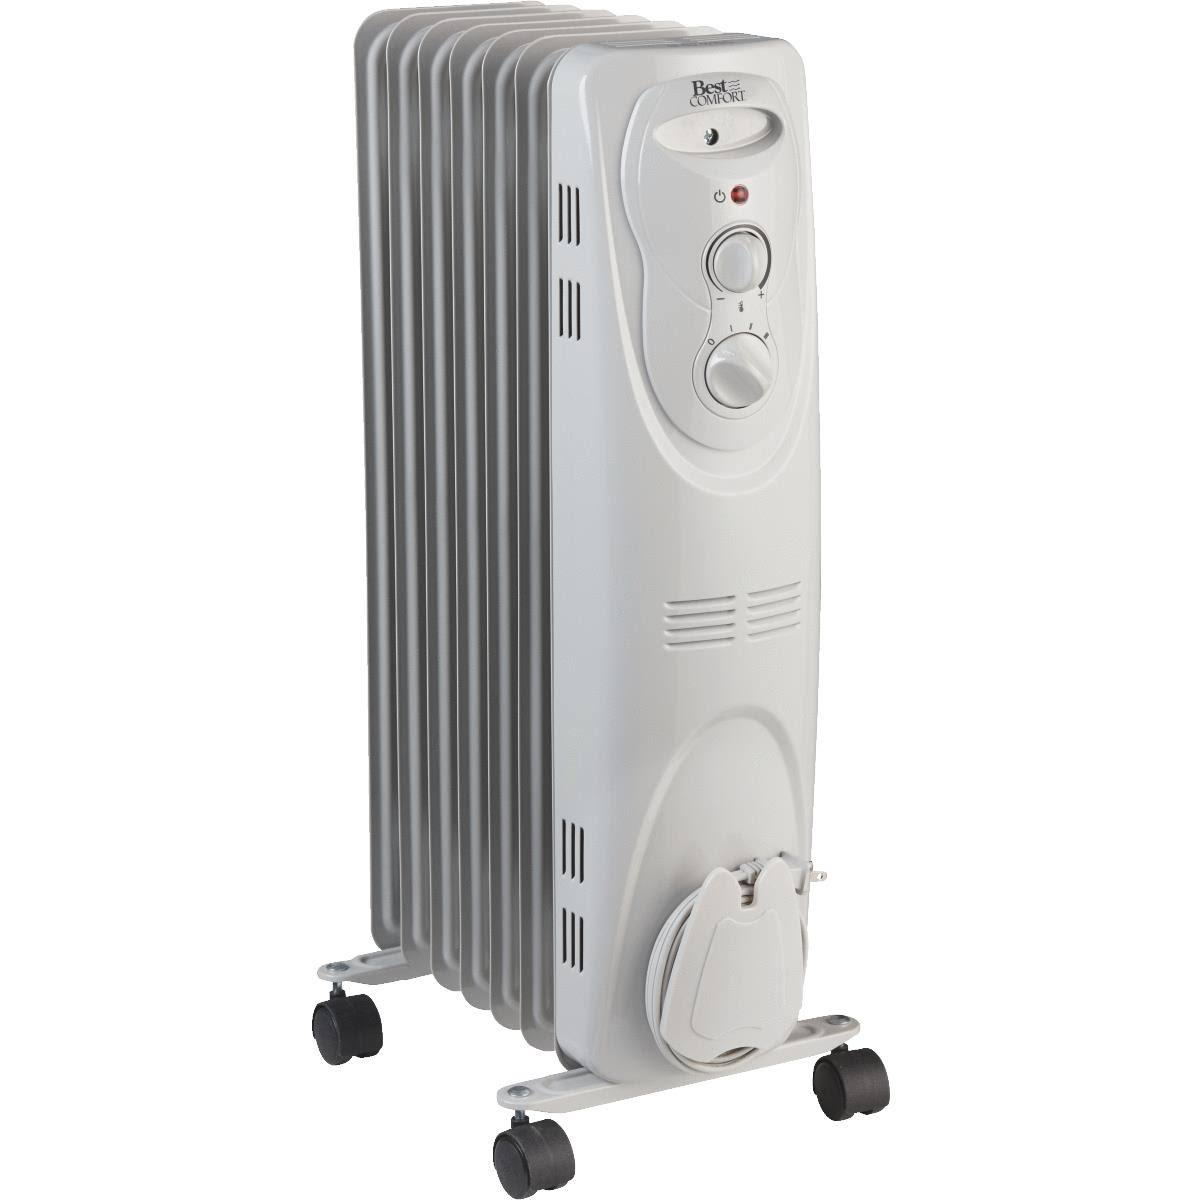 Do It Best Comfort Oil-filled Radiator Heater